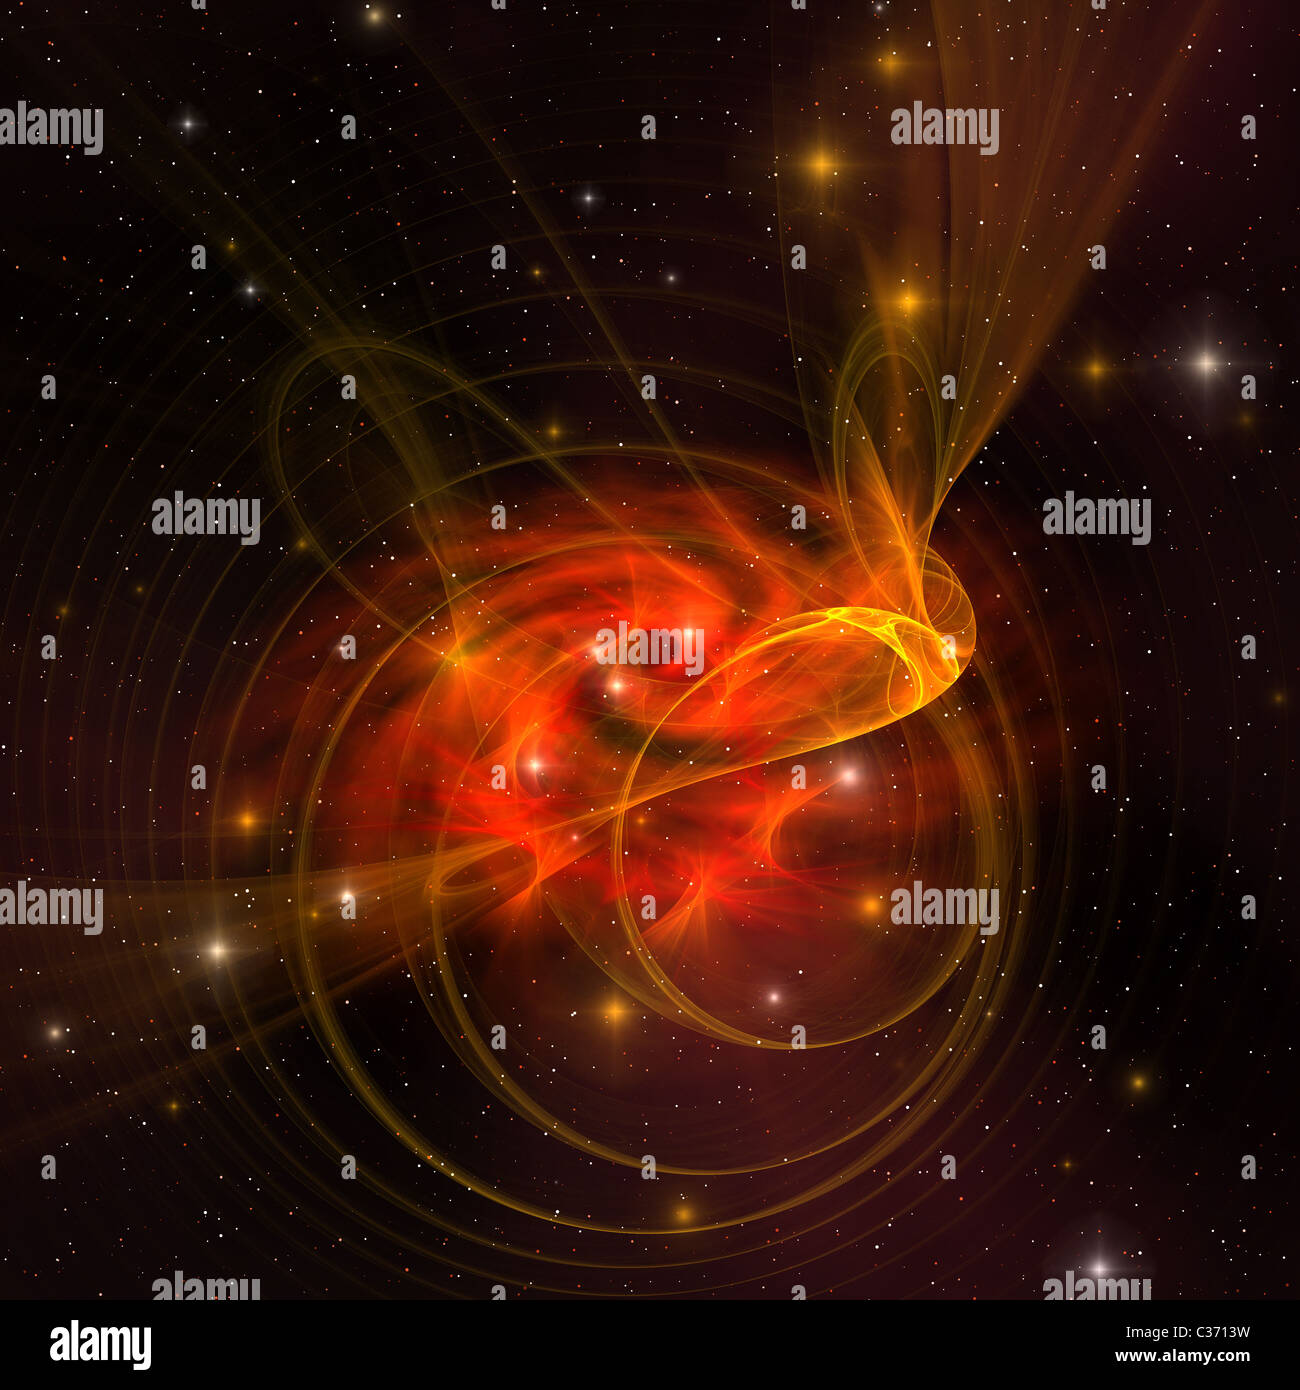 A beautiful galaxy out in space has reddish orange swirls in its core. - Stock Image